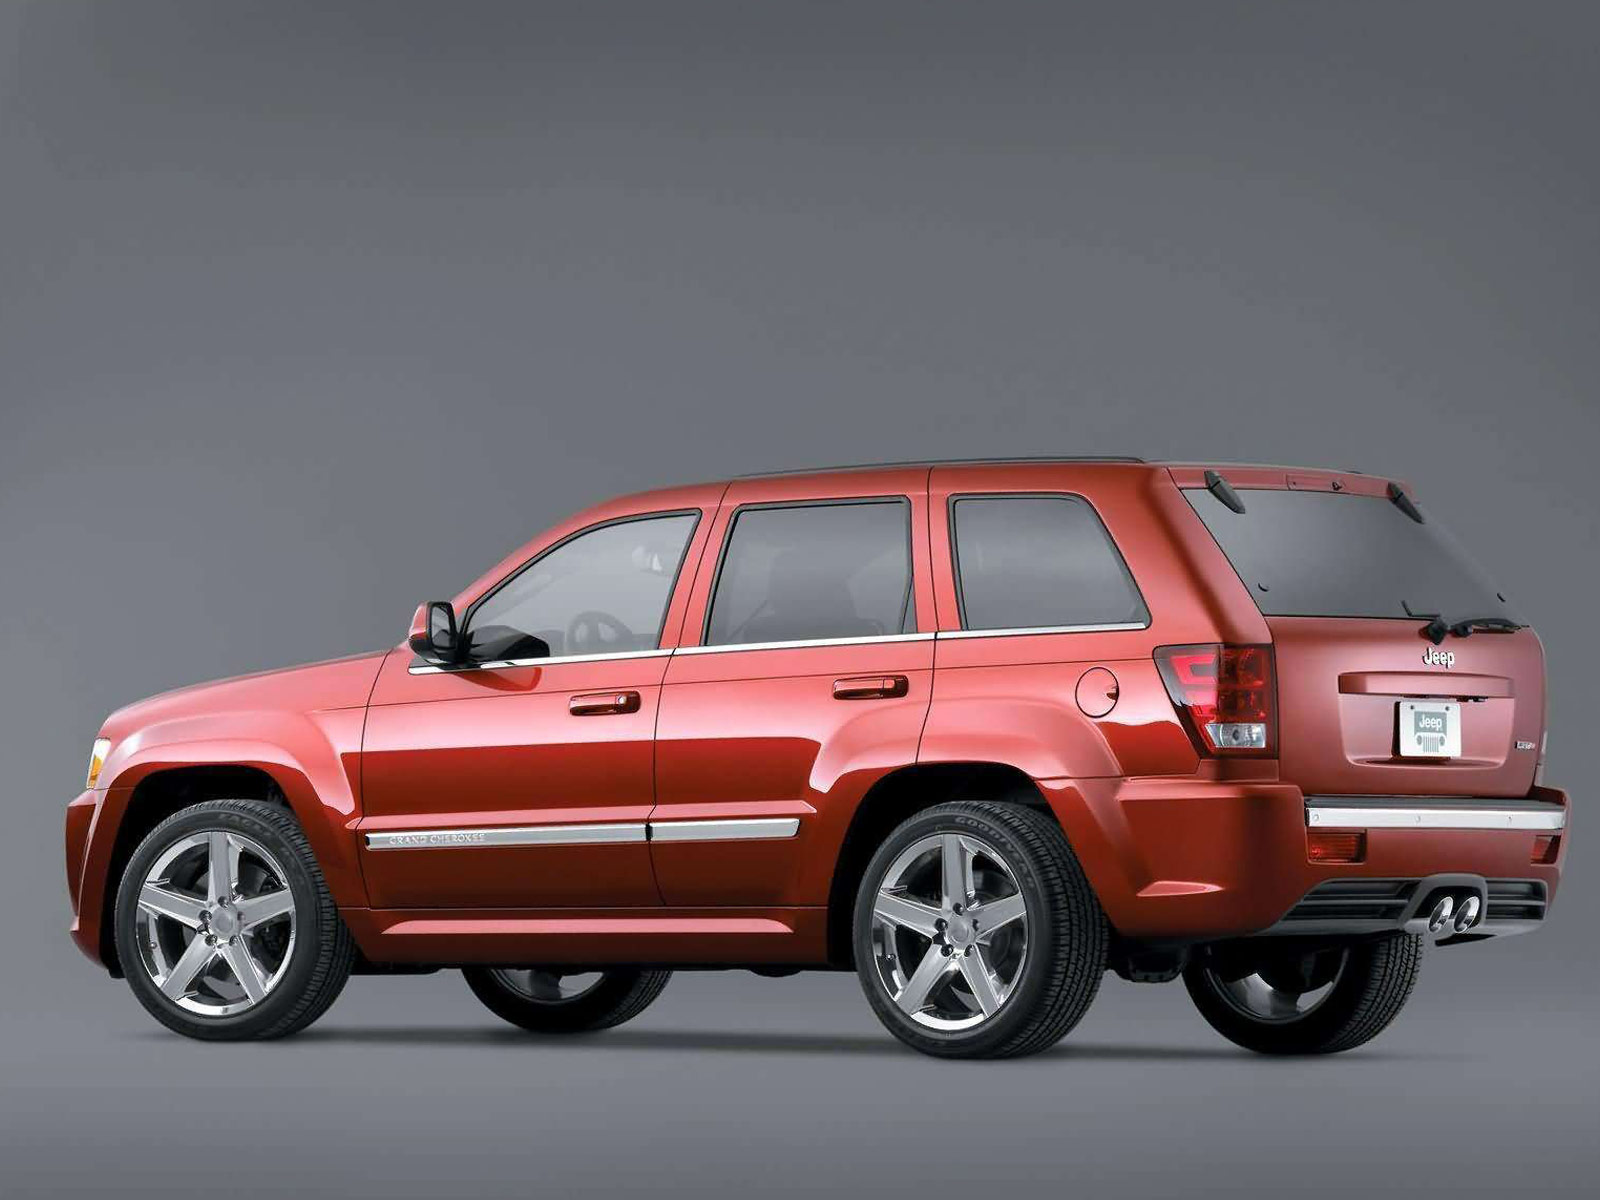 2006 jeep grand cherokee srt8 car wallpaper auto trends magazine. Black Bedroom Furniture Sets. Home Design Ideas